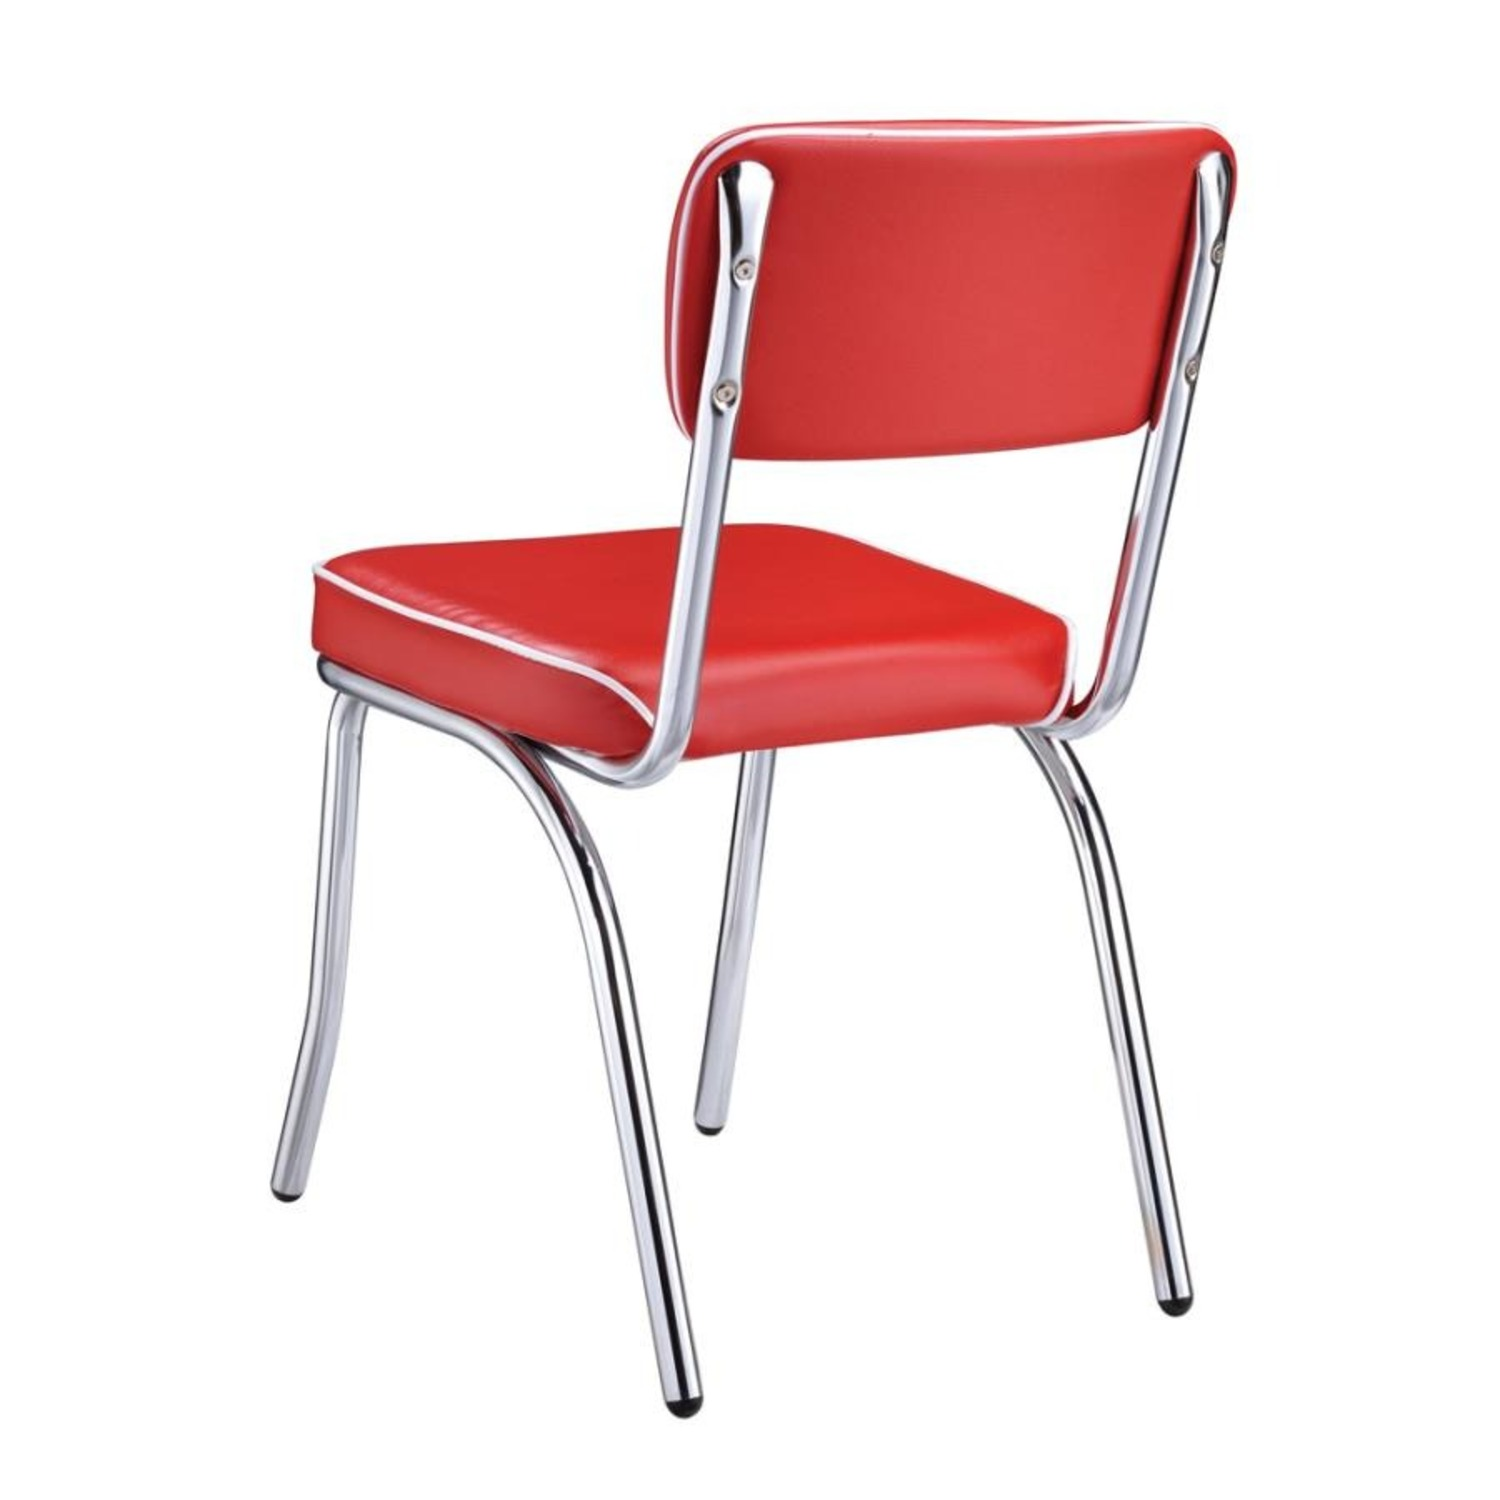 Mid-Century Style Dining Chair In Red Leatherette - image-4